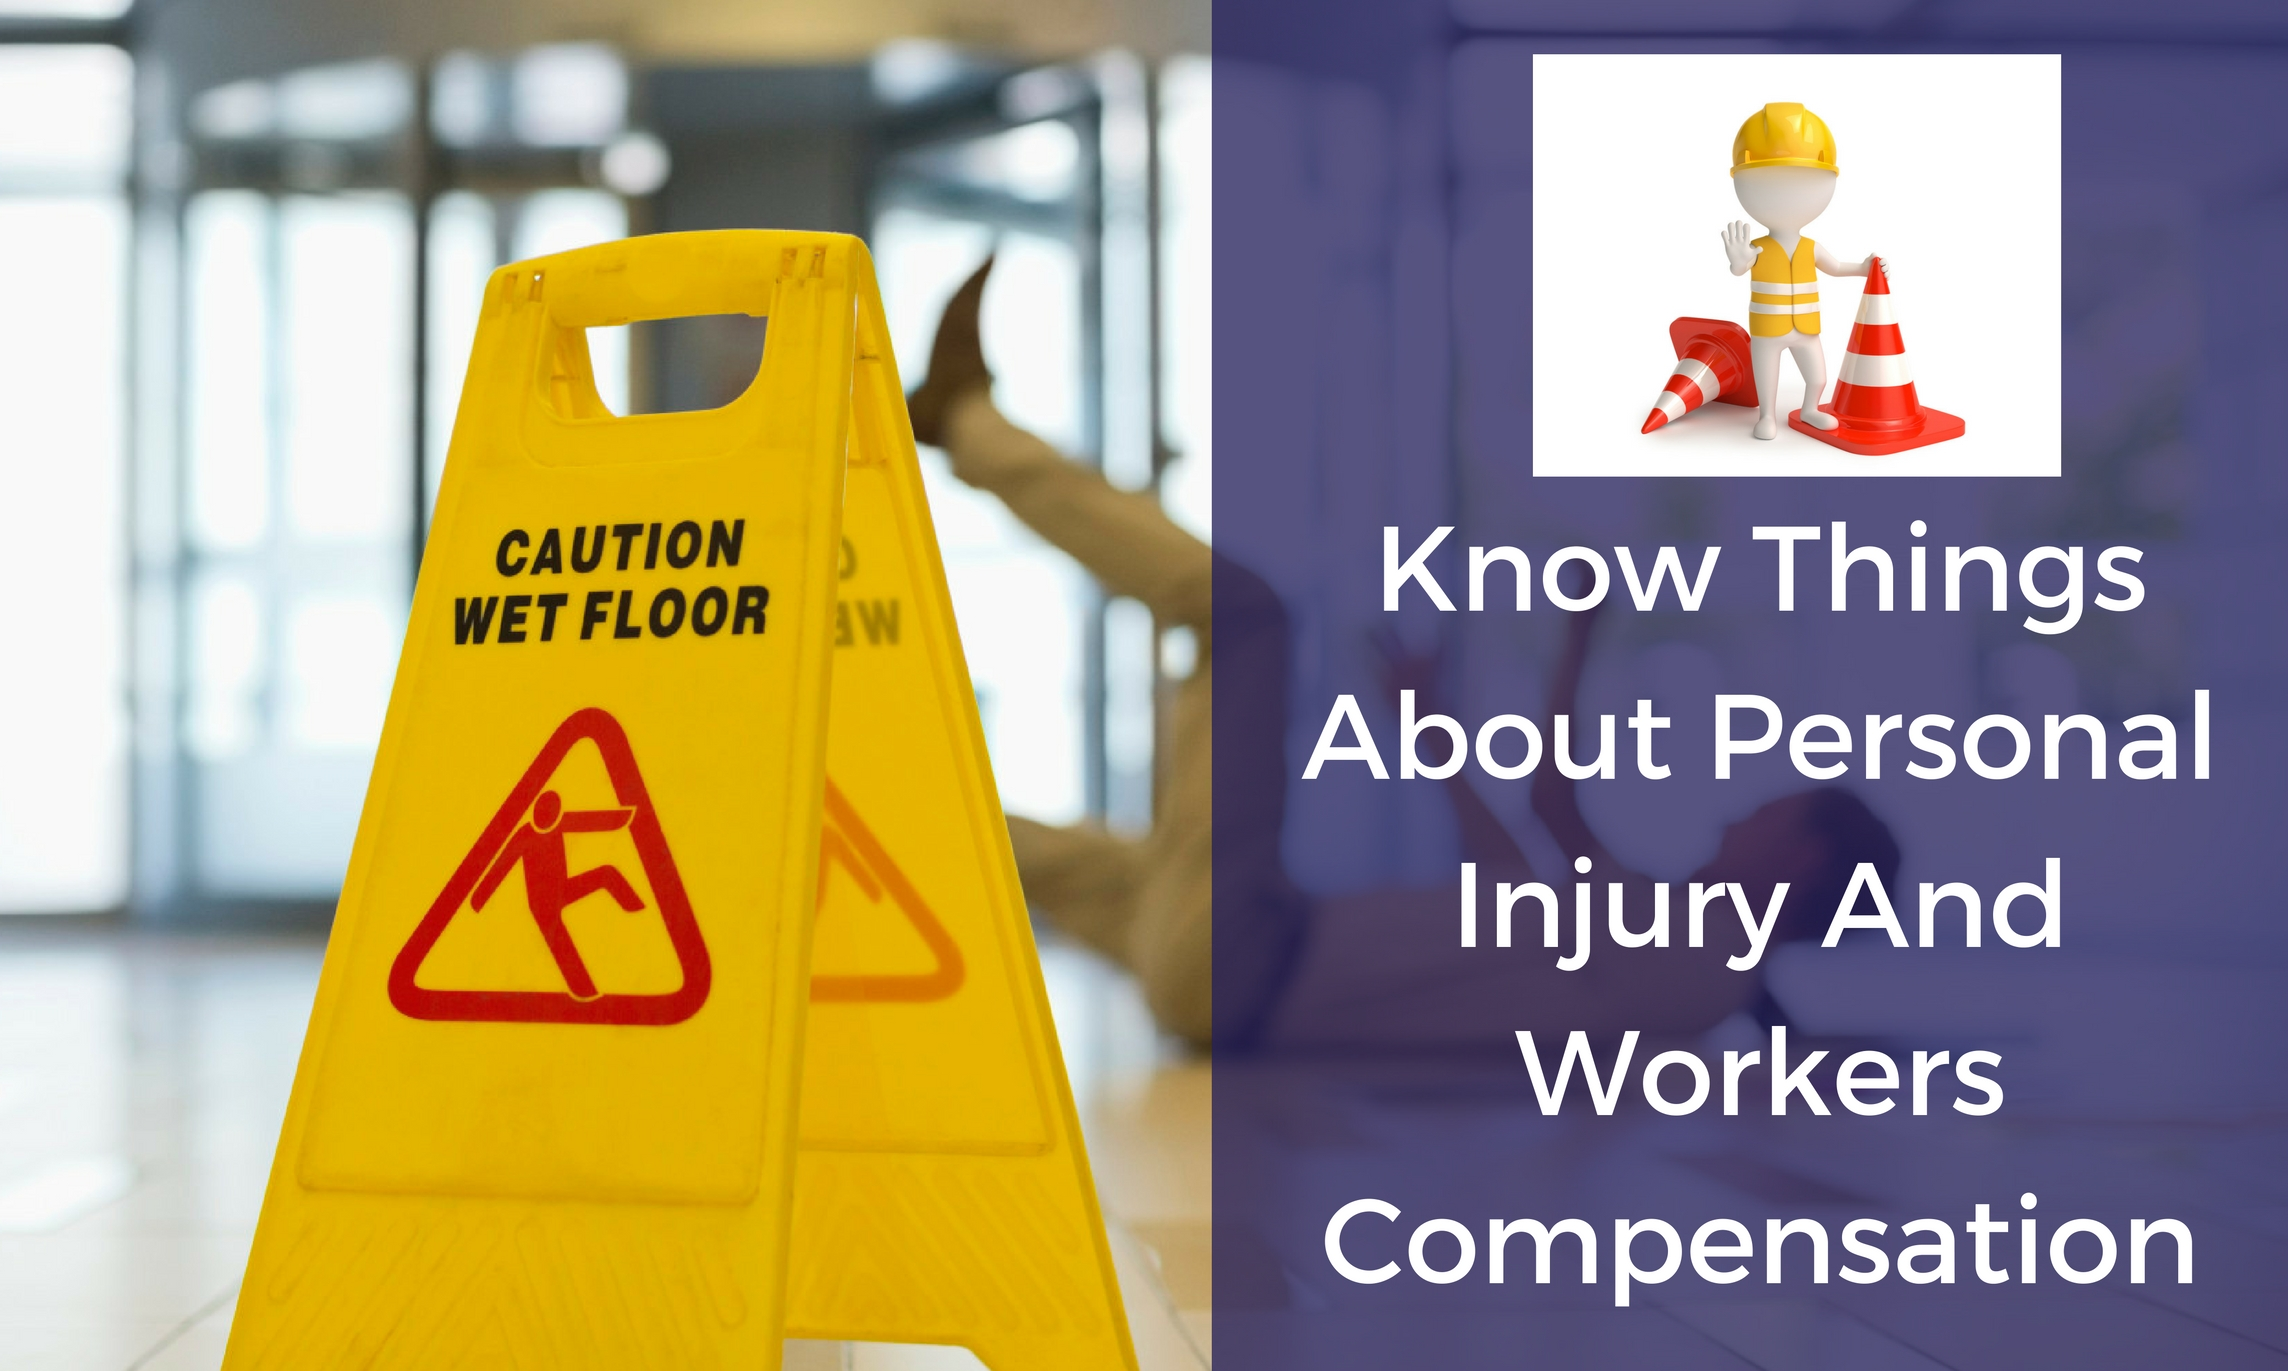 Know Things About Personal Injury And Workers Compensation